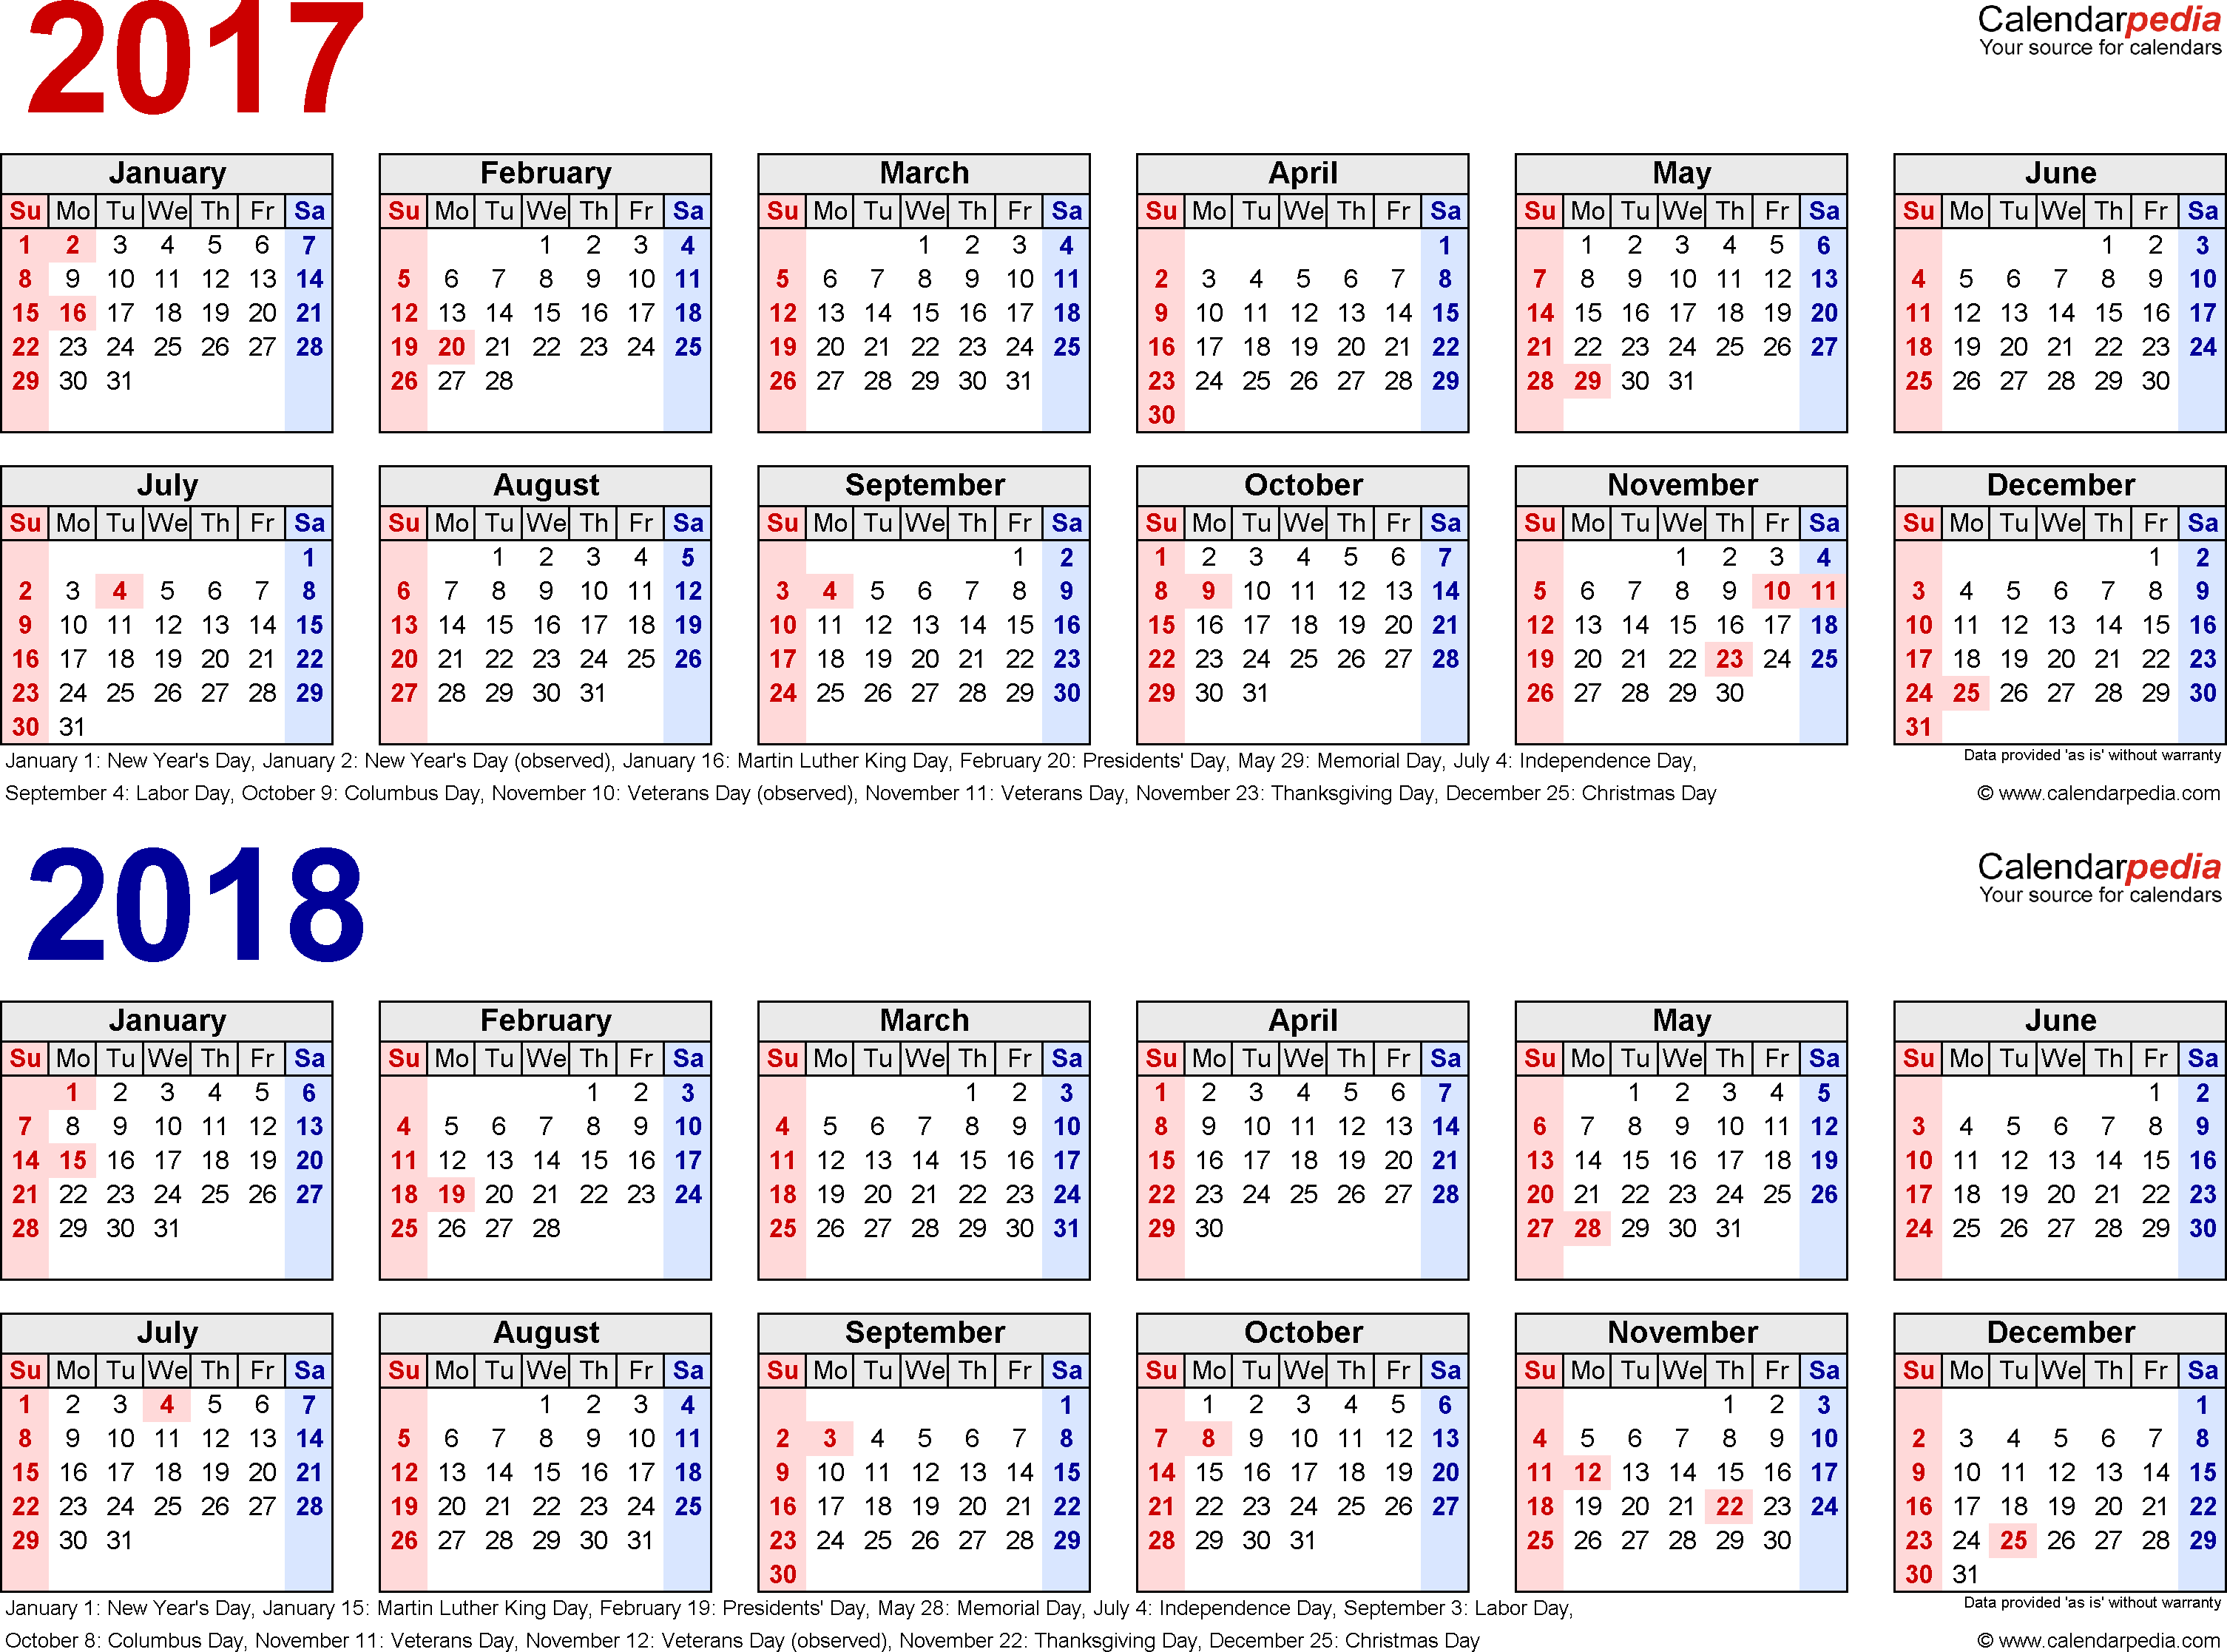 template 1 pdf template for two year calendar 20172018 landscape orientation